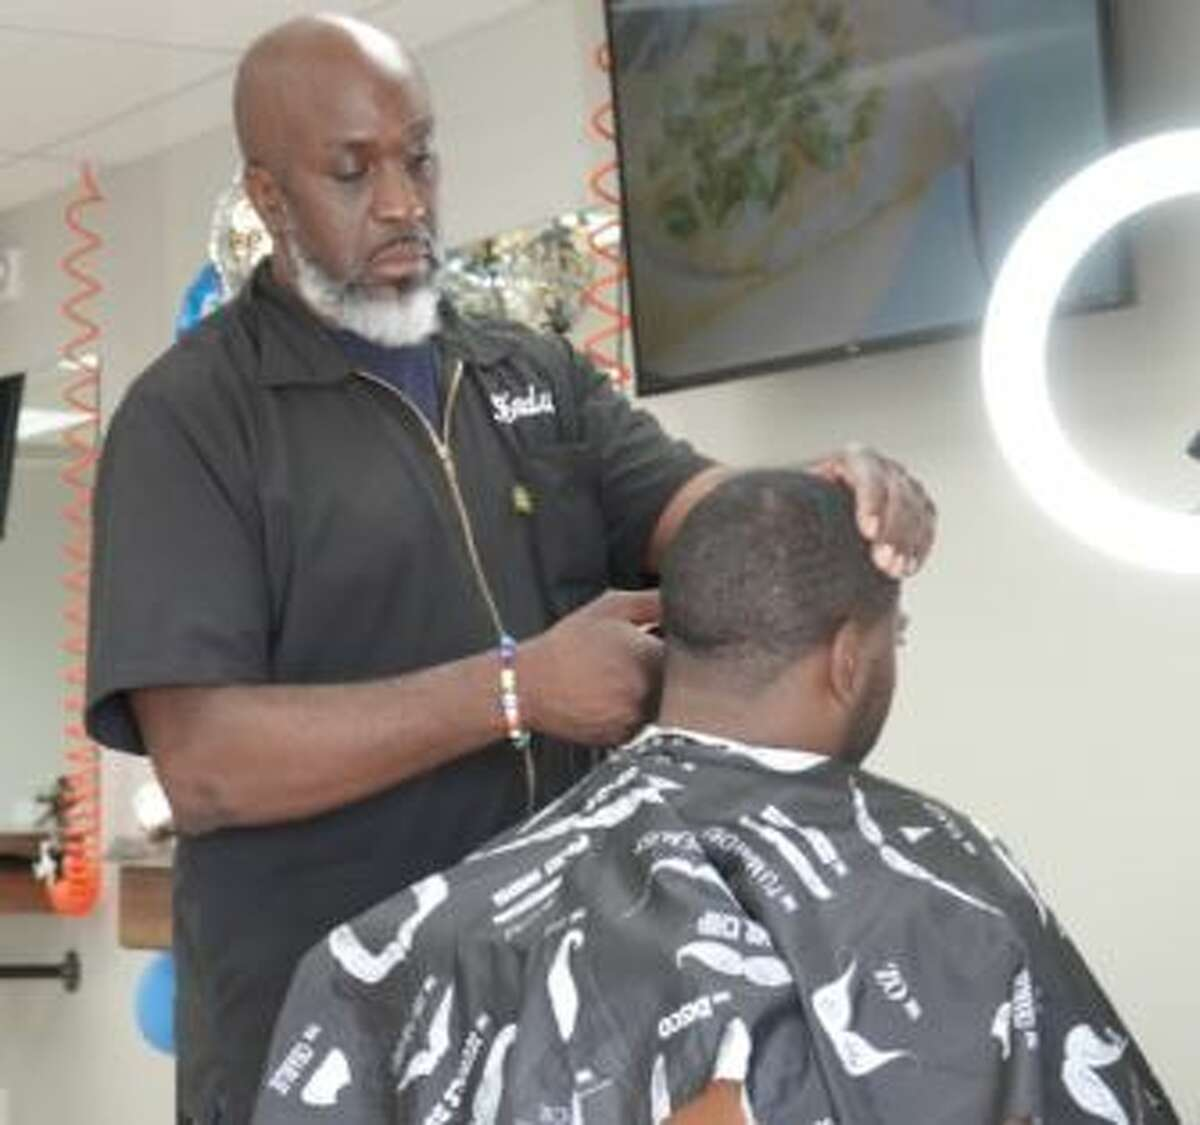 The Capital District Barbershop Lounge is in Albany's Loudon Plaza and will offer free haircuts to boys ages 15 and under on Sept. 5, 2021, in time for the new school year.